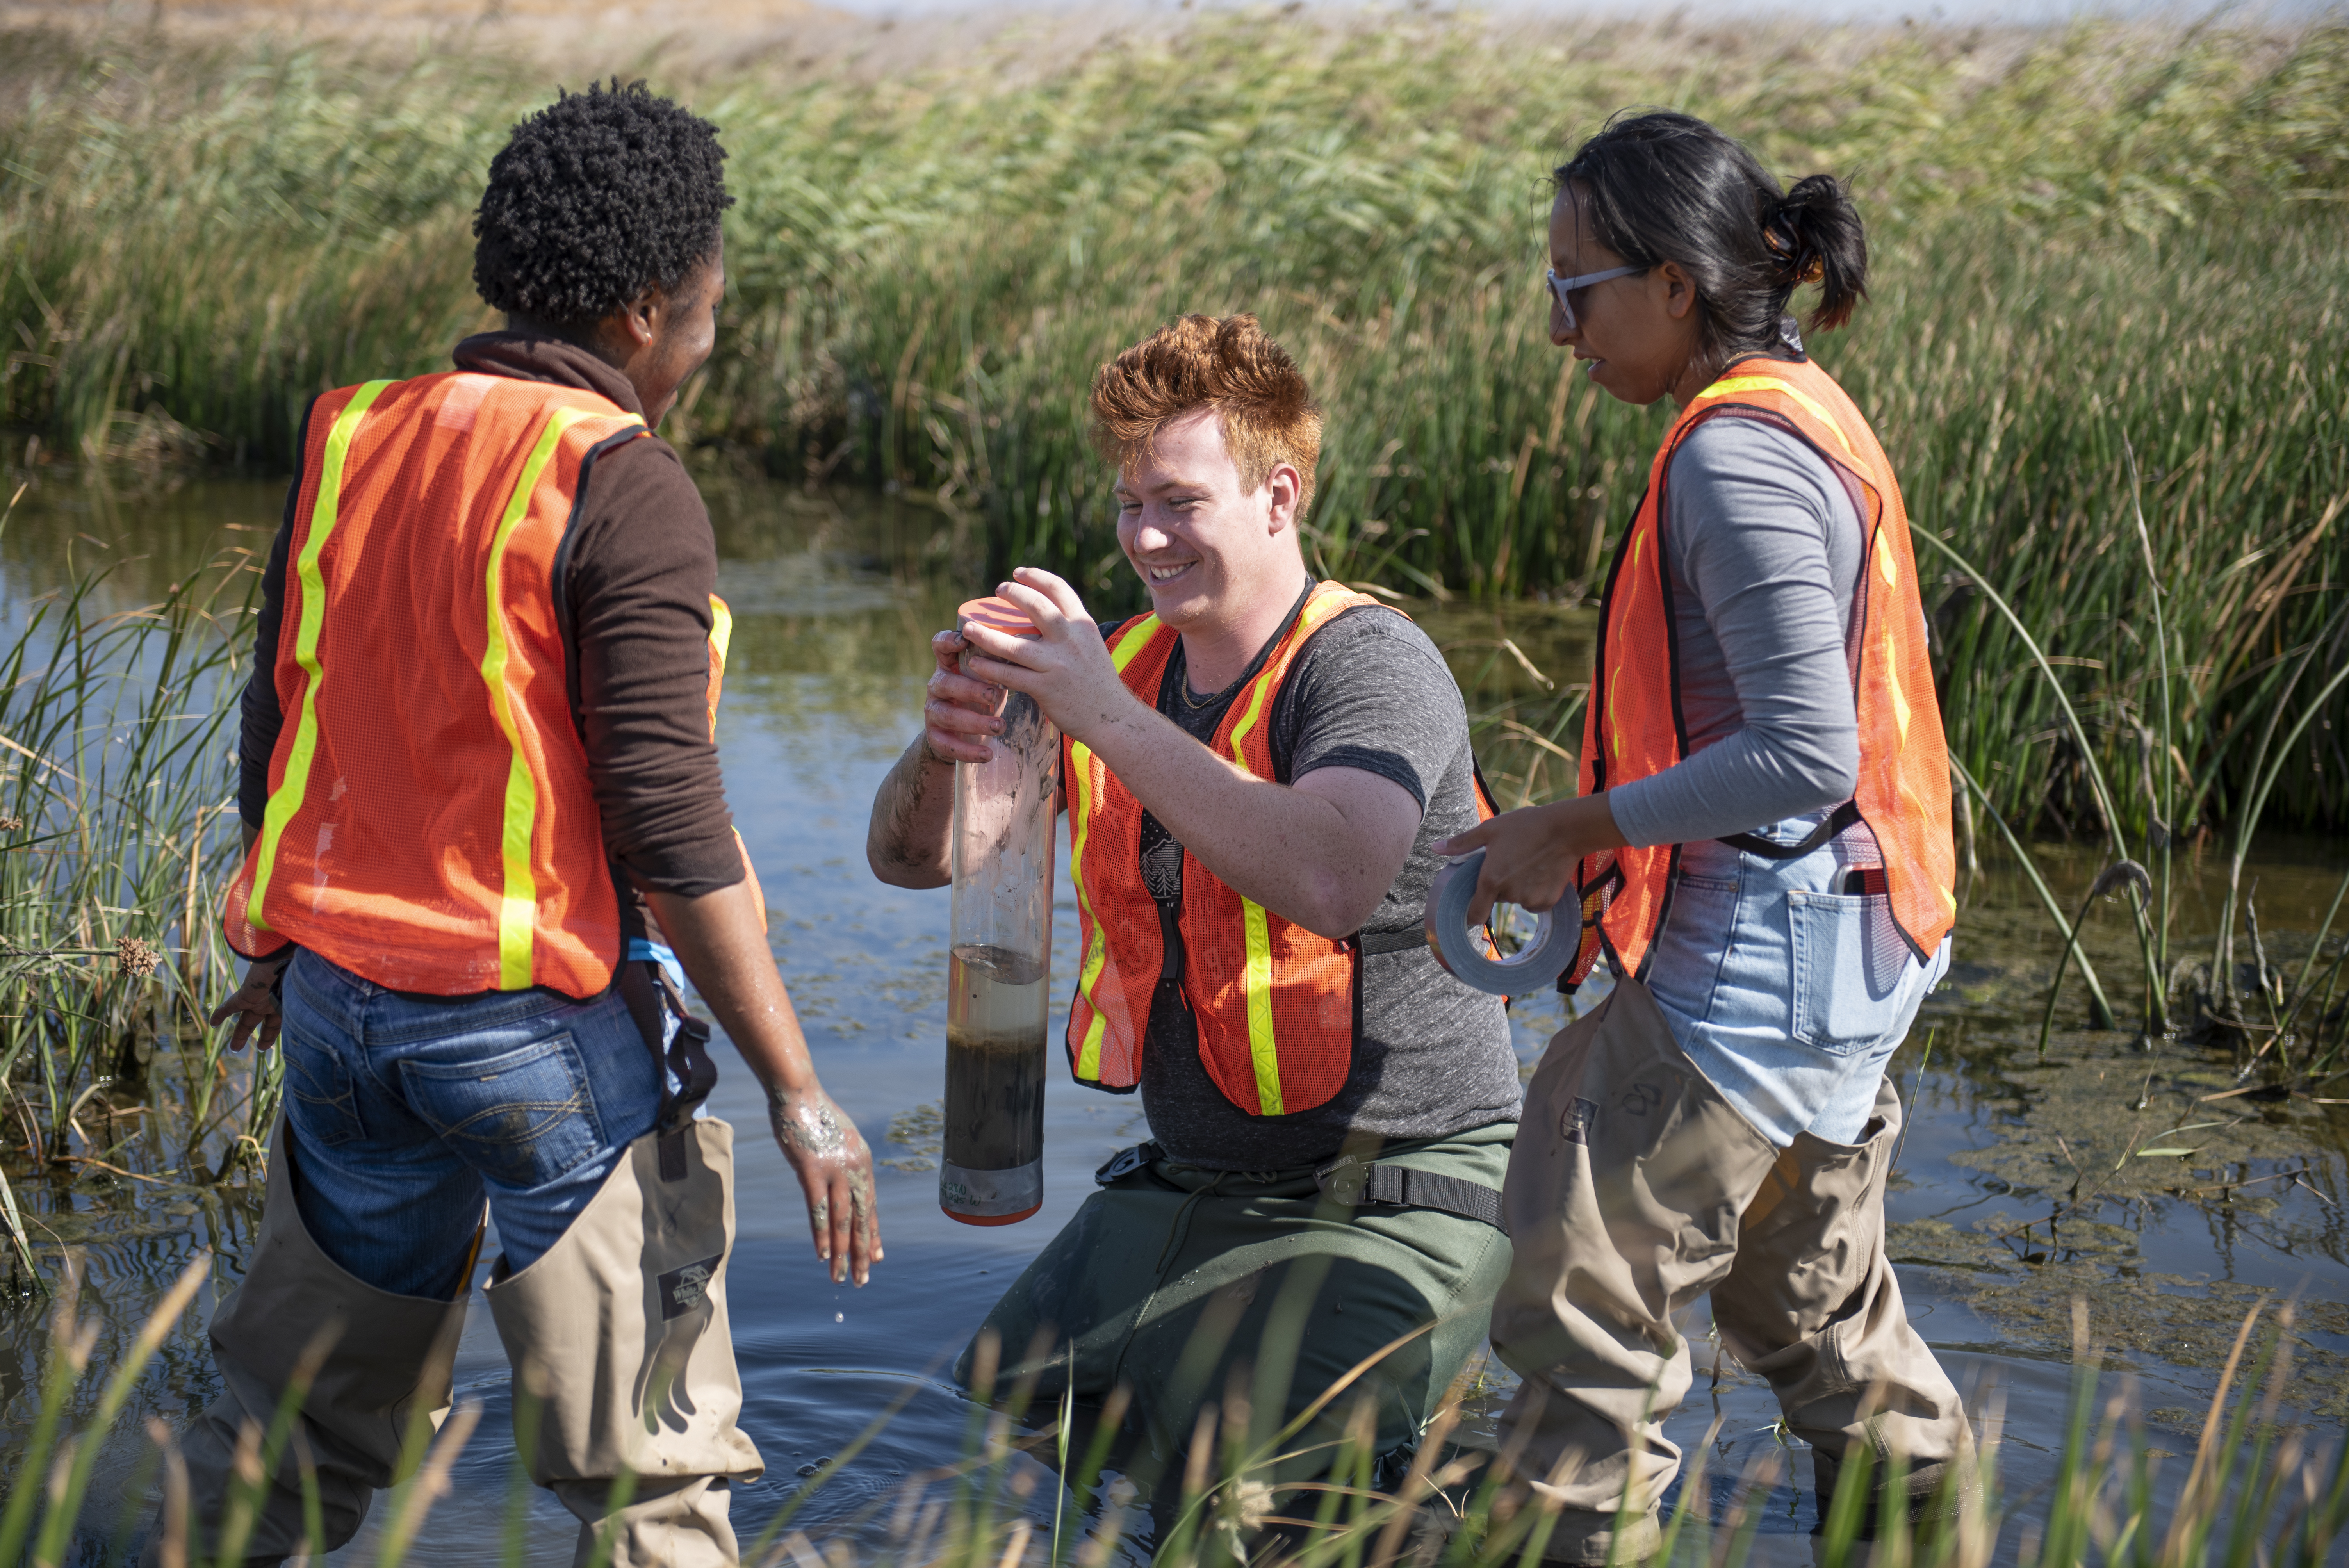 Field assistant Ben Harte '22 assists Nelson and Professor Williams with a core sample